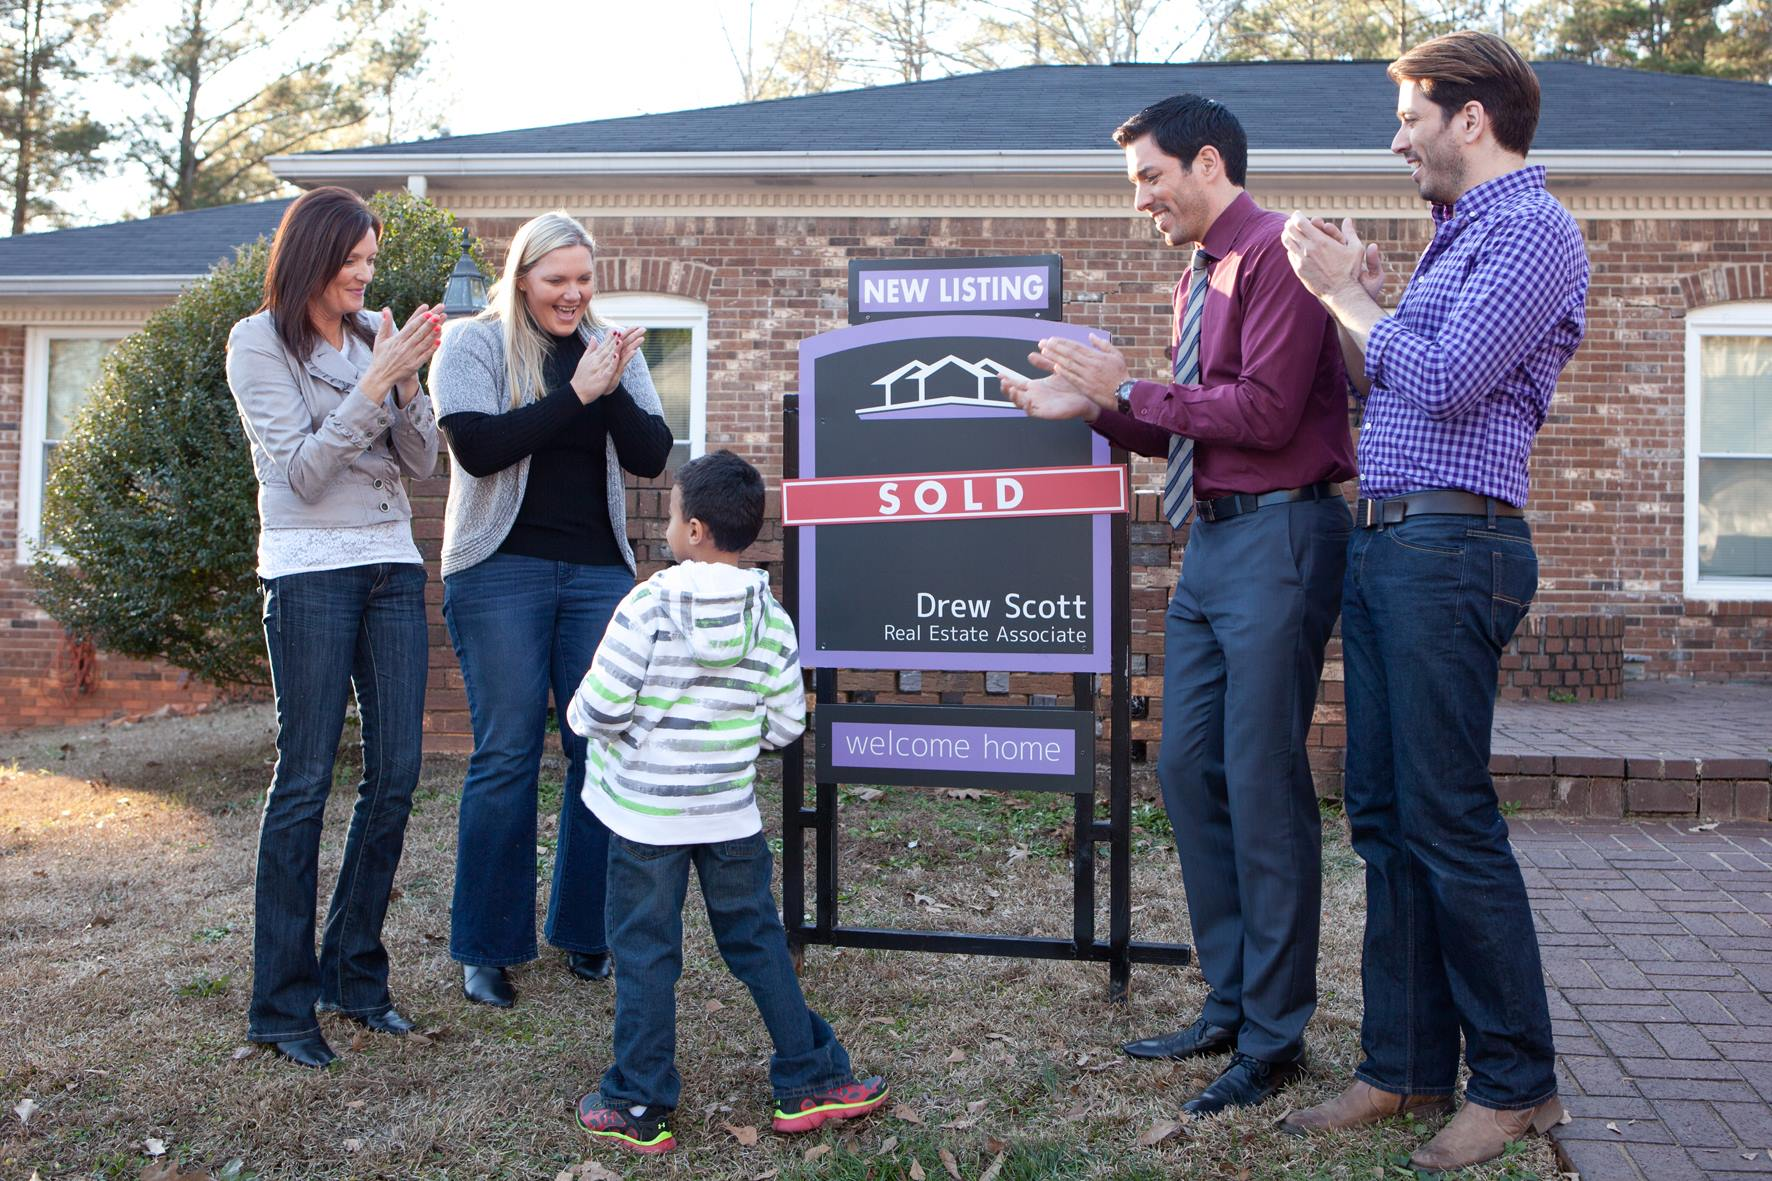 Property brothers for sale sign